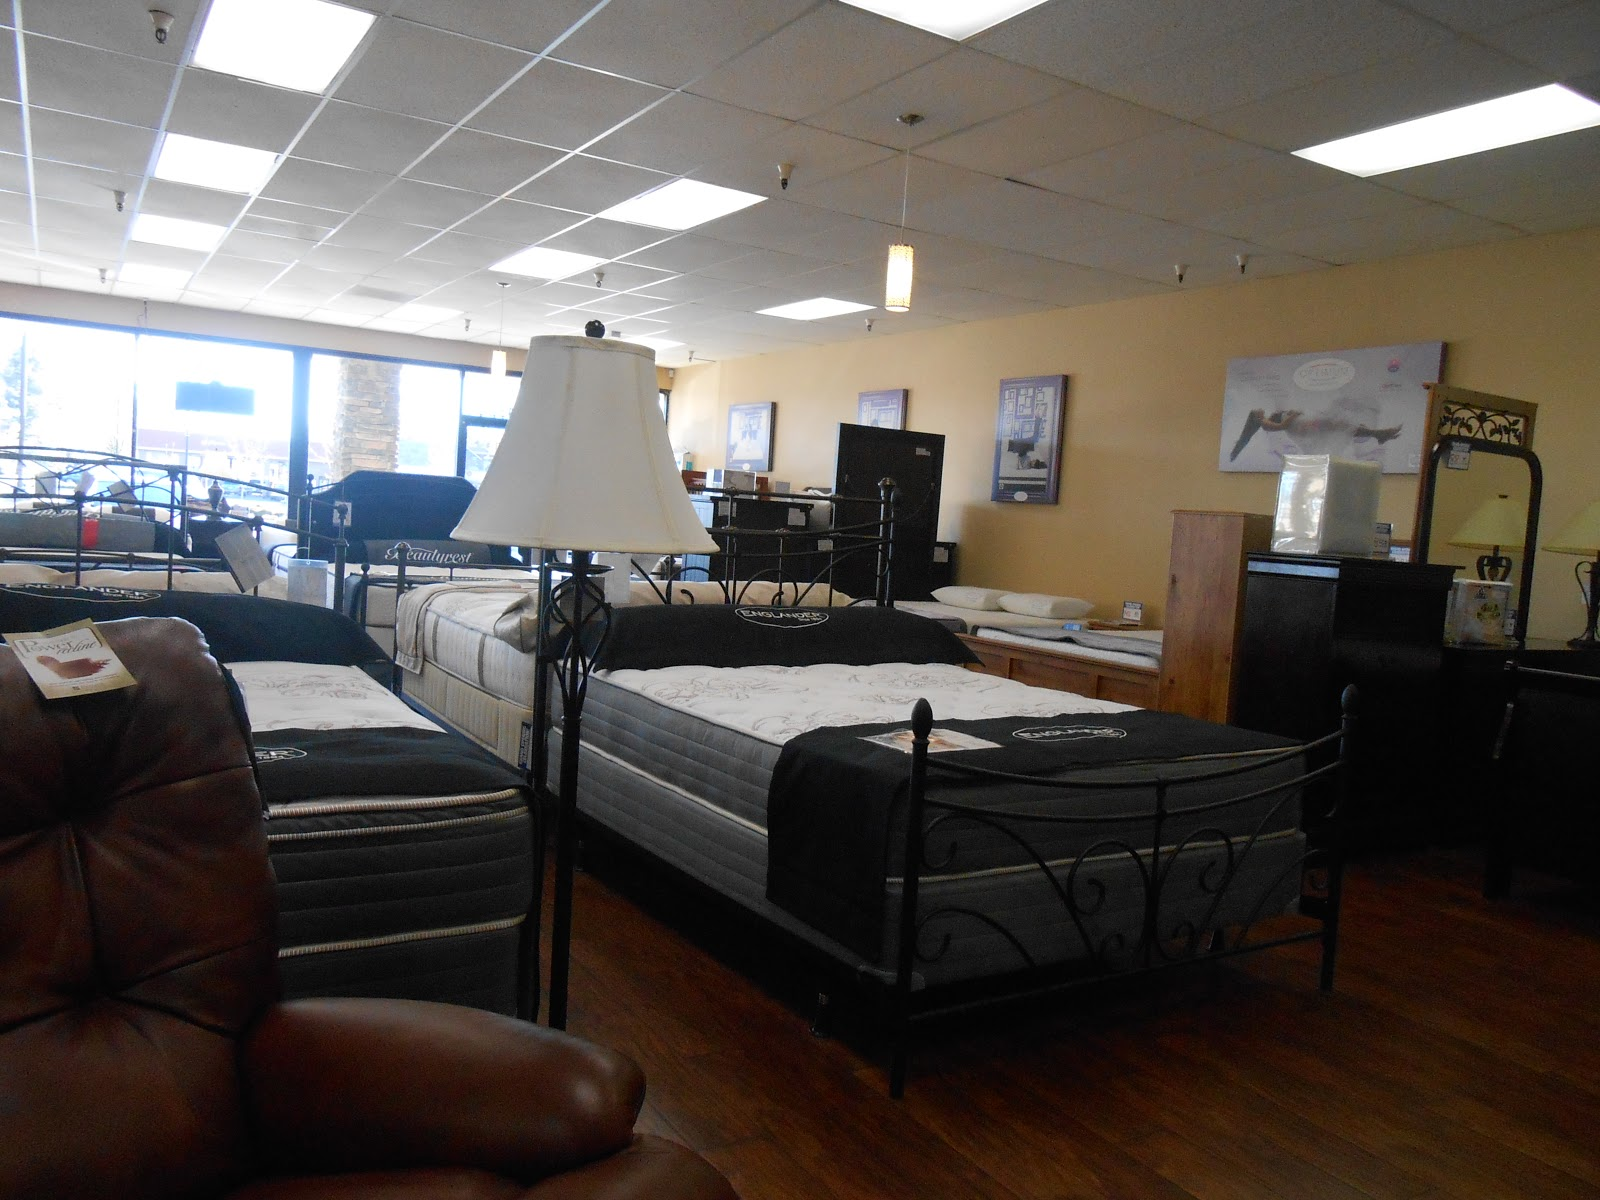 Sierra Mattress In Cameron Park Is Now Open! It Is In The Goldorado Center  Located At 3450 Palmer Drive #8. The Owners Are Mr. And Mrs. Earnshaw.